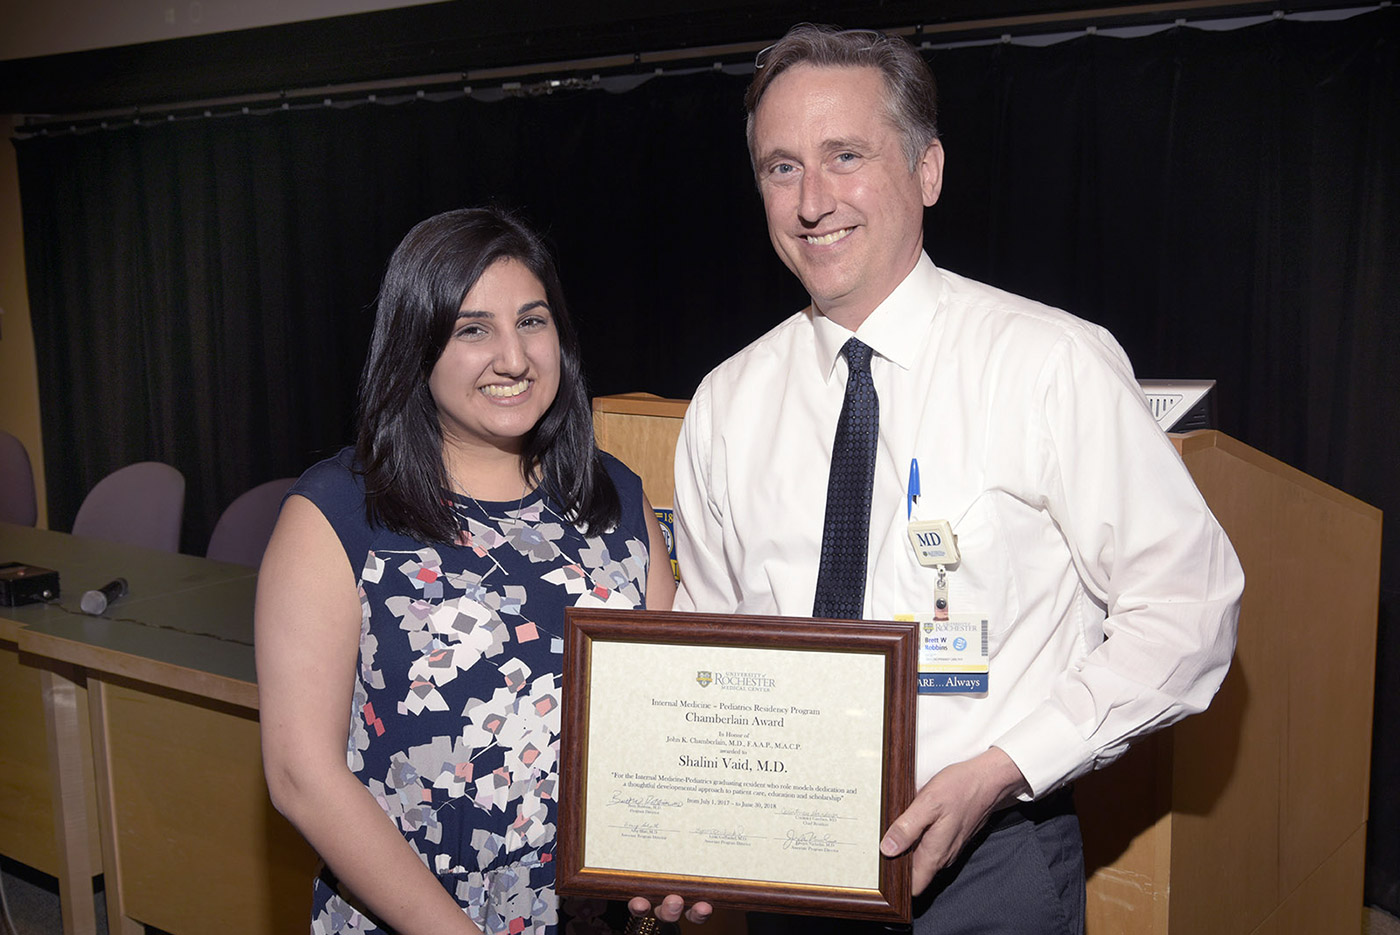 Shalini Vaid, MD and Brett Robbins, MD